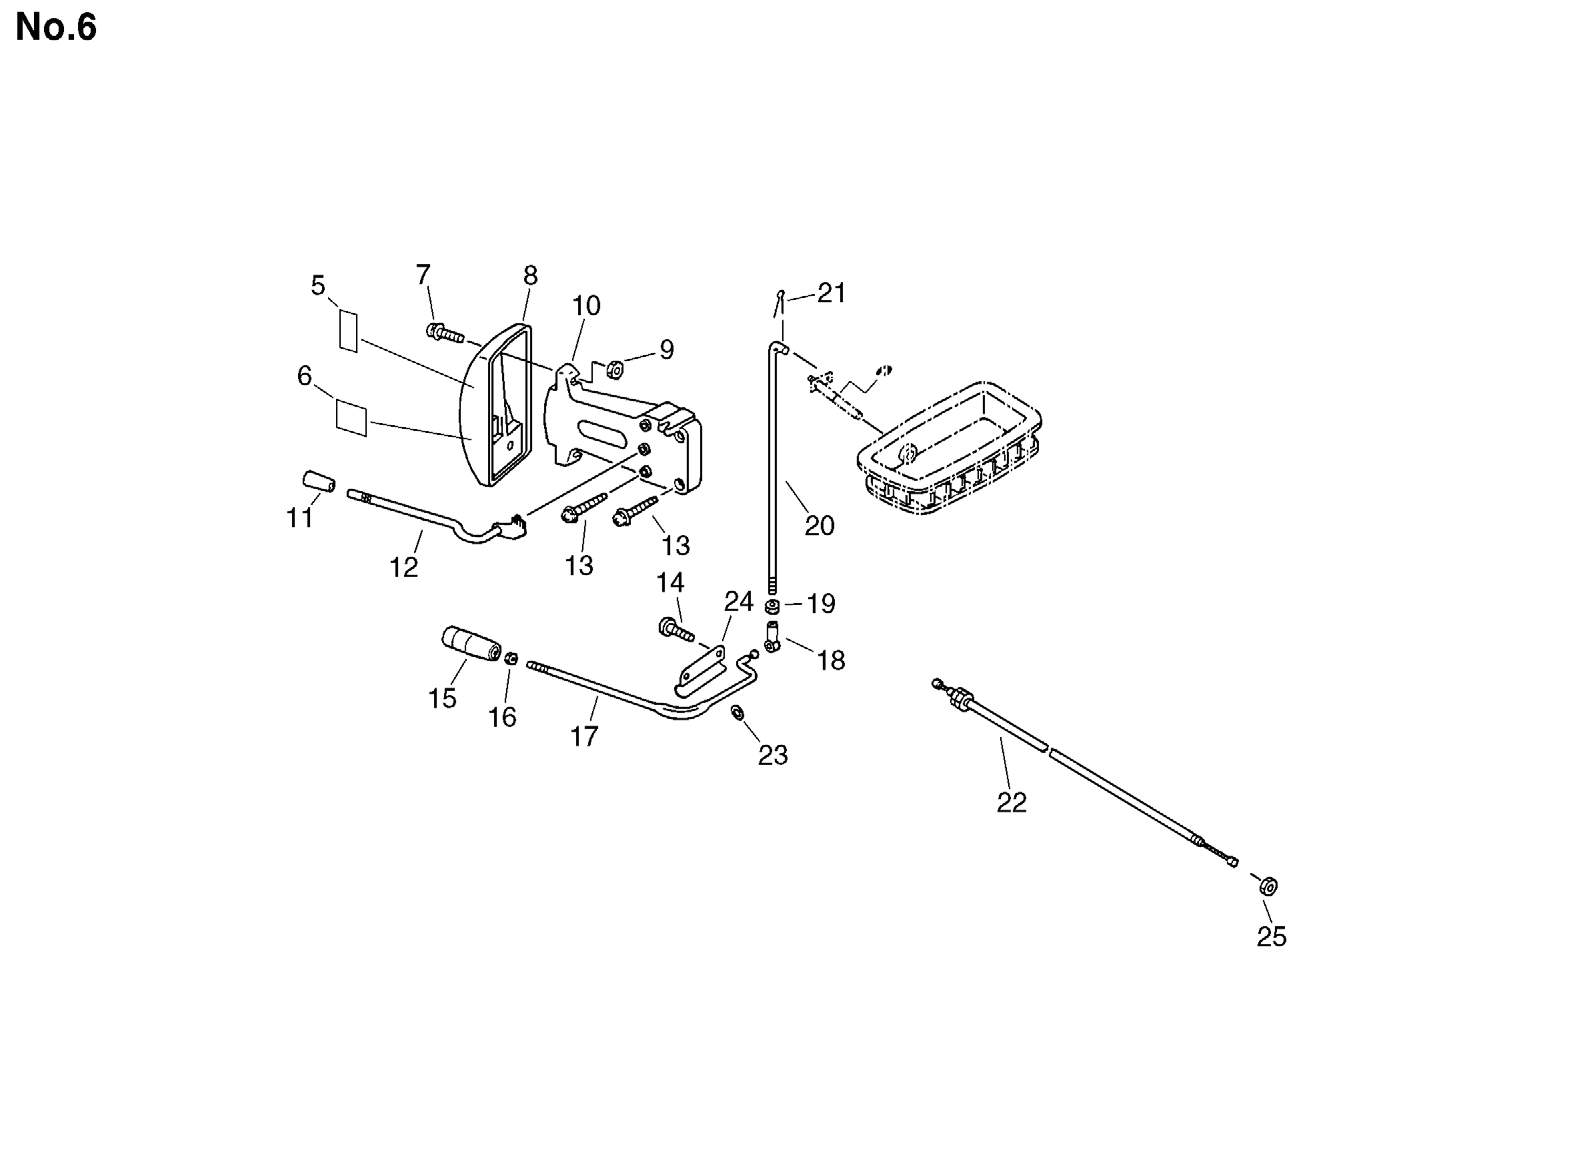 Group:Duster/Mist Blowers Model:DM-4610(SrNr 004334 and before) Section:Control Lever Group:Duster/Mist Blowers Model:DM-4610(SrNr 004334 and before) Section:Chemical Tank 5 210023-00210 1 PIPE,